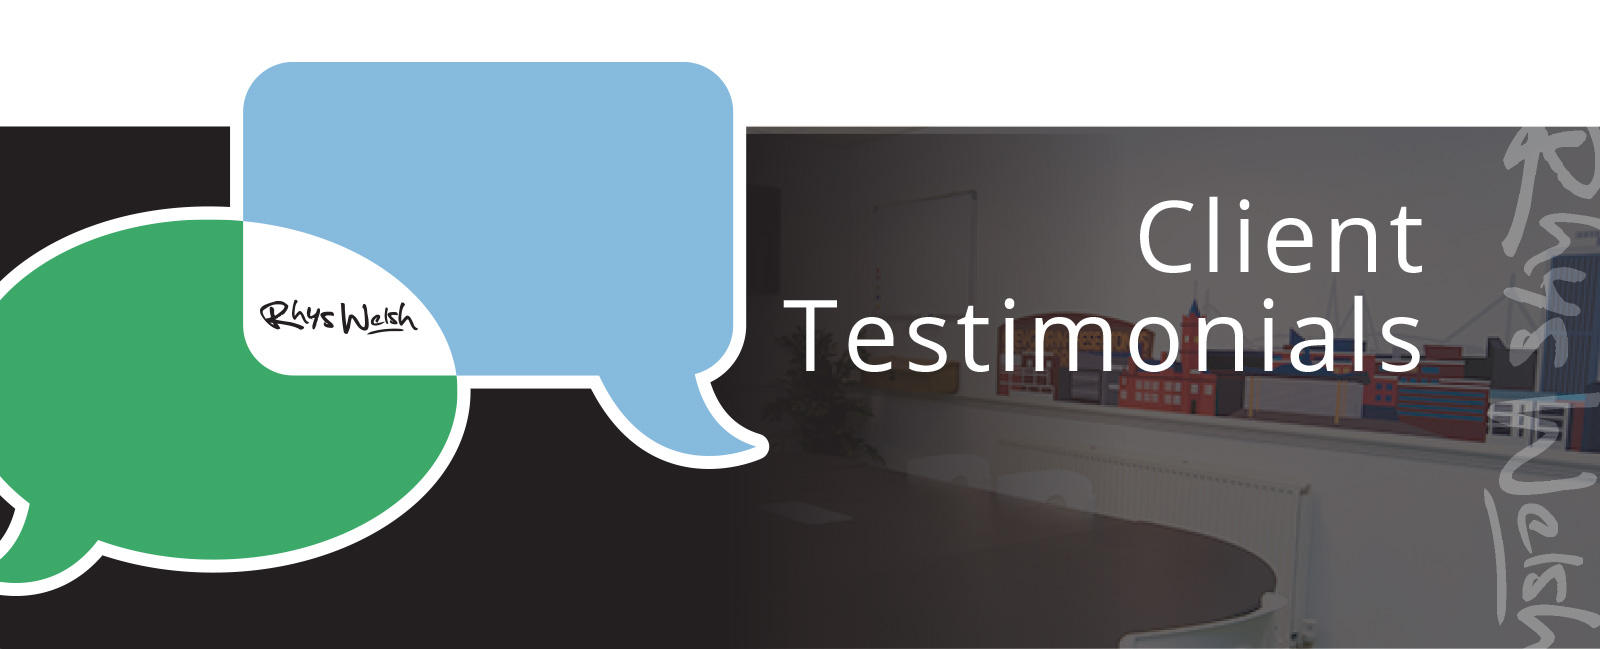 Clients-Testimonials-Web-Design-for-cardiff